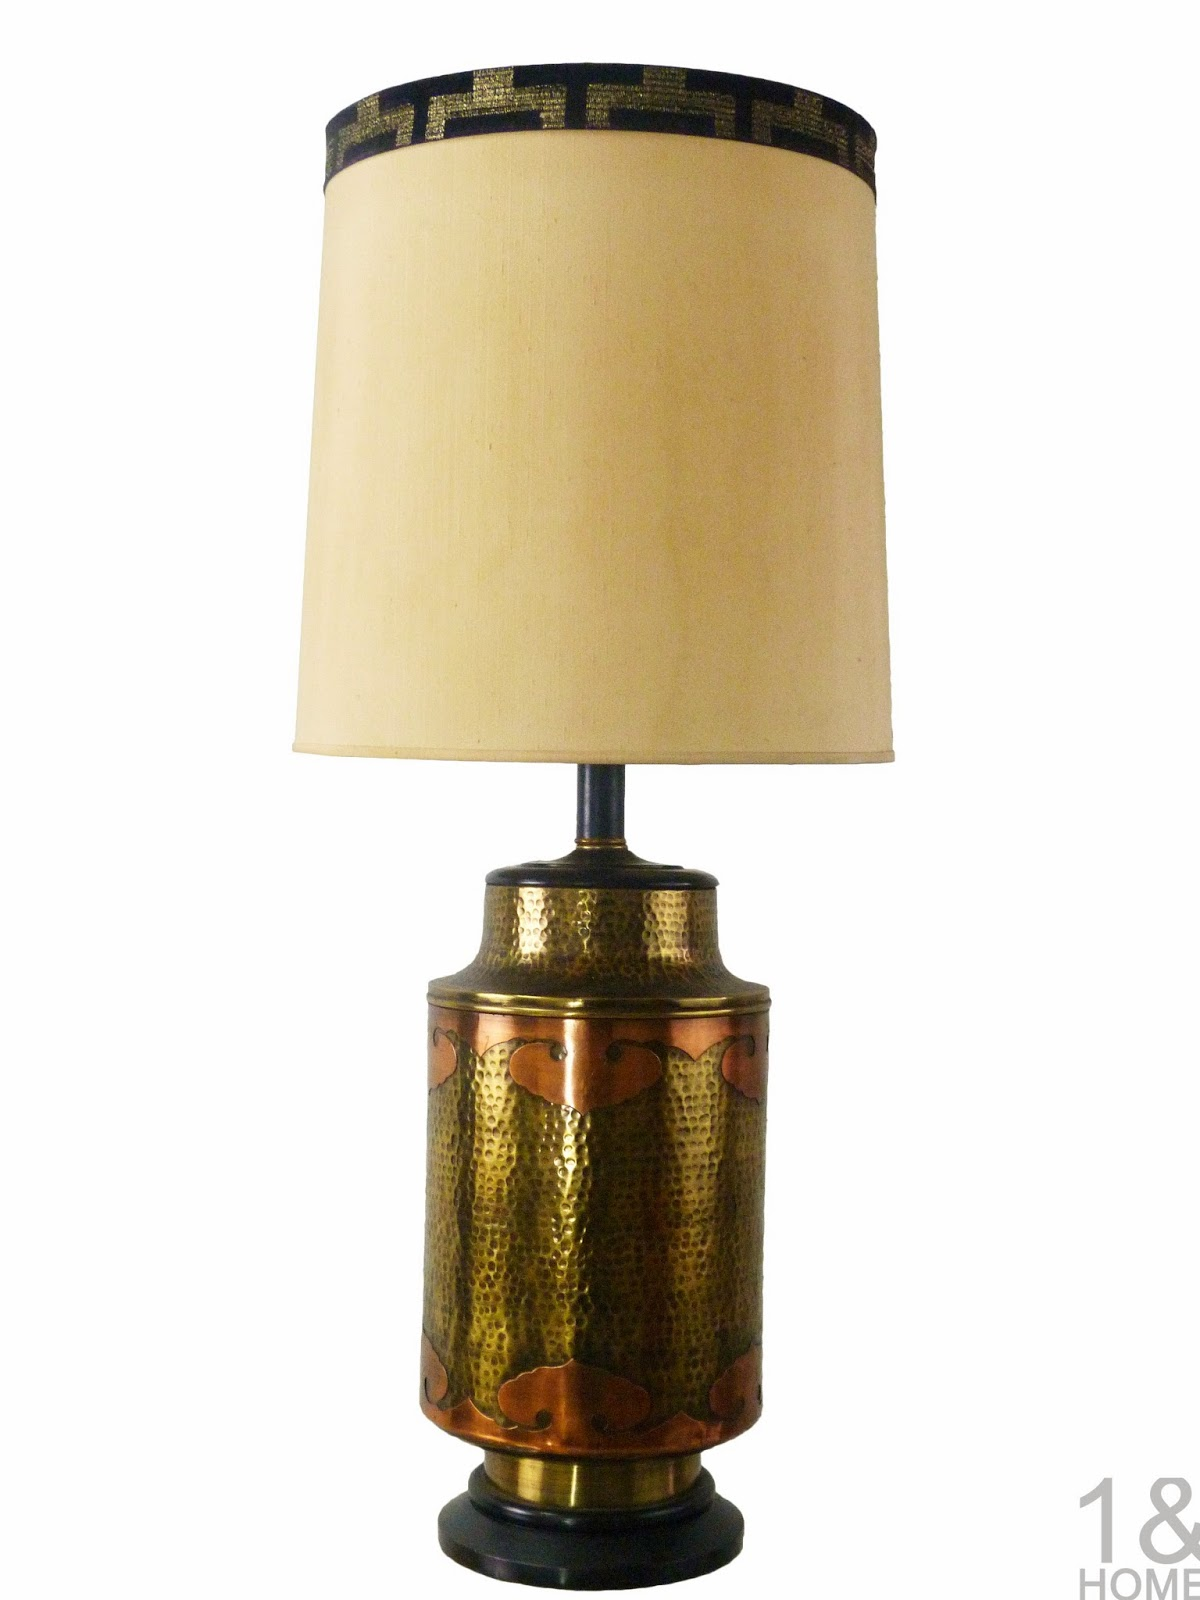 Mid-Century stiffel Hammered Brass and Copper Table Lamp